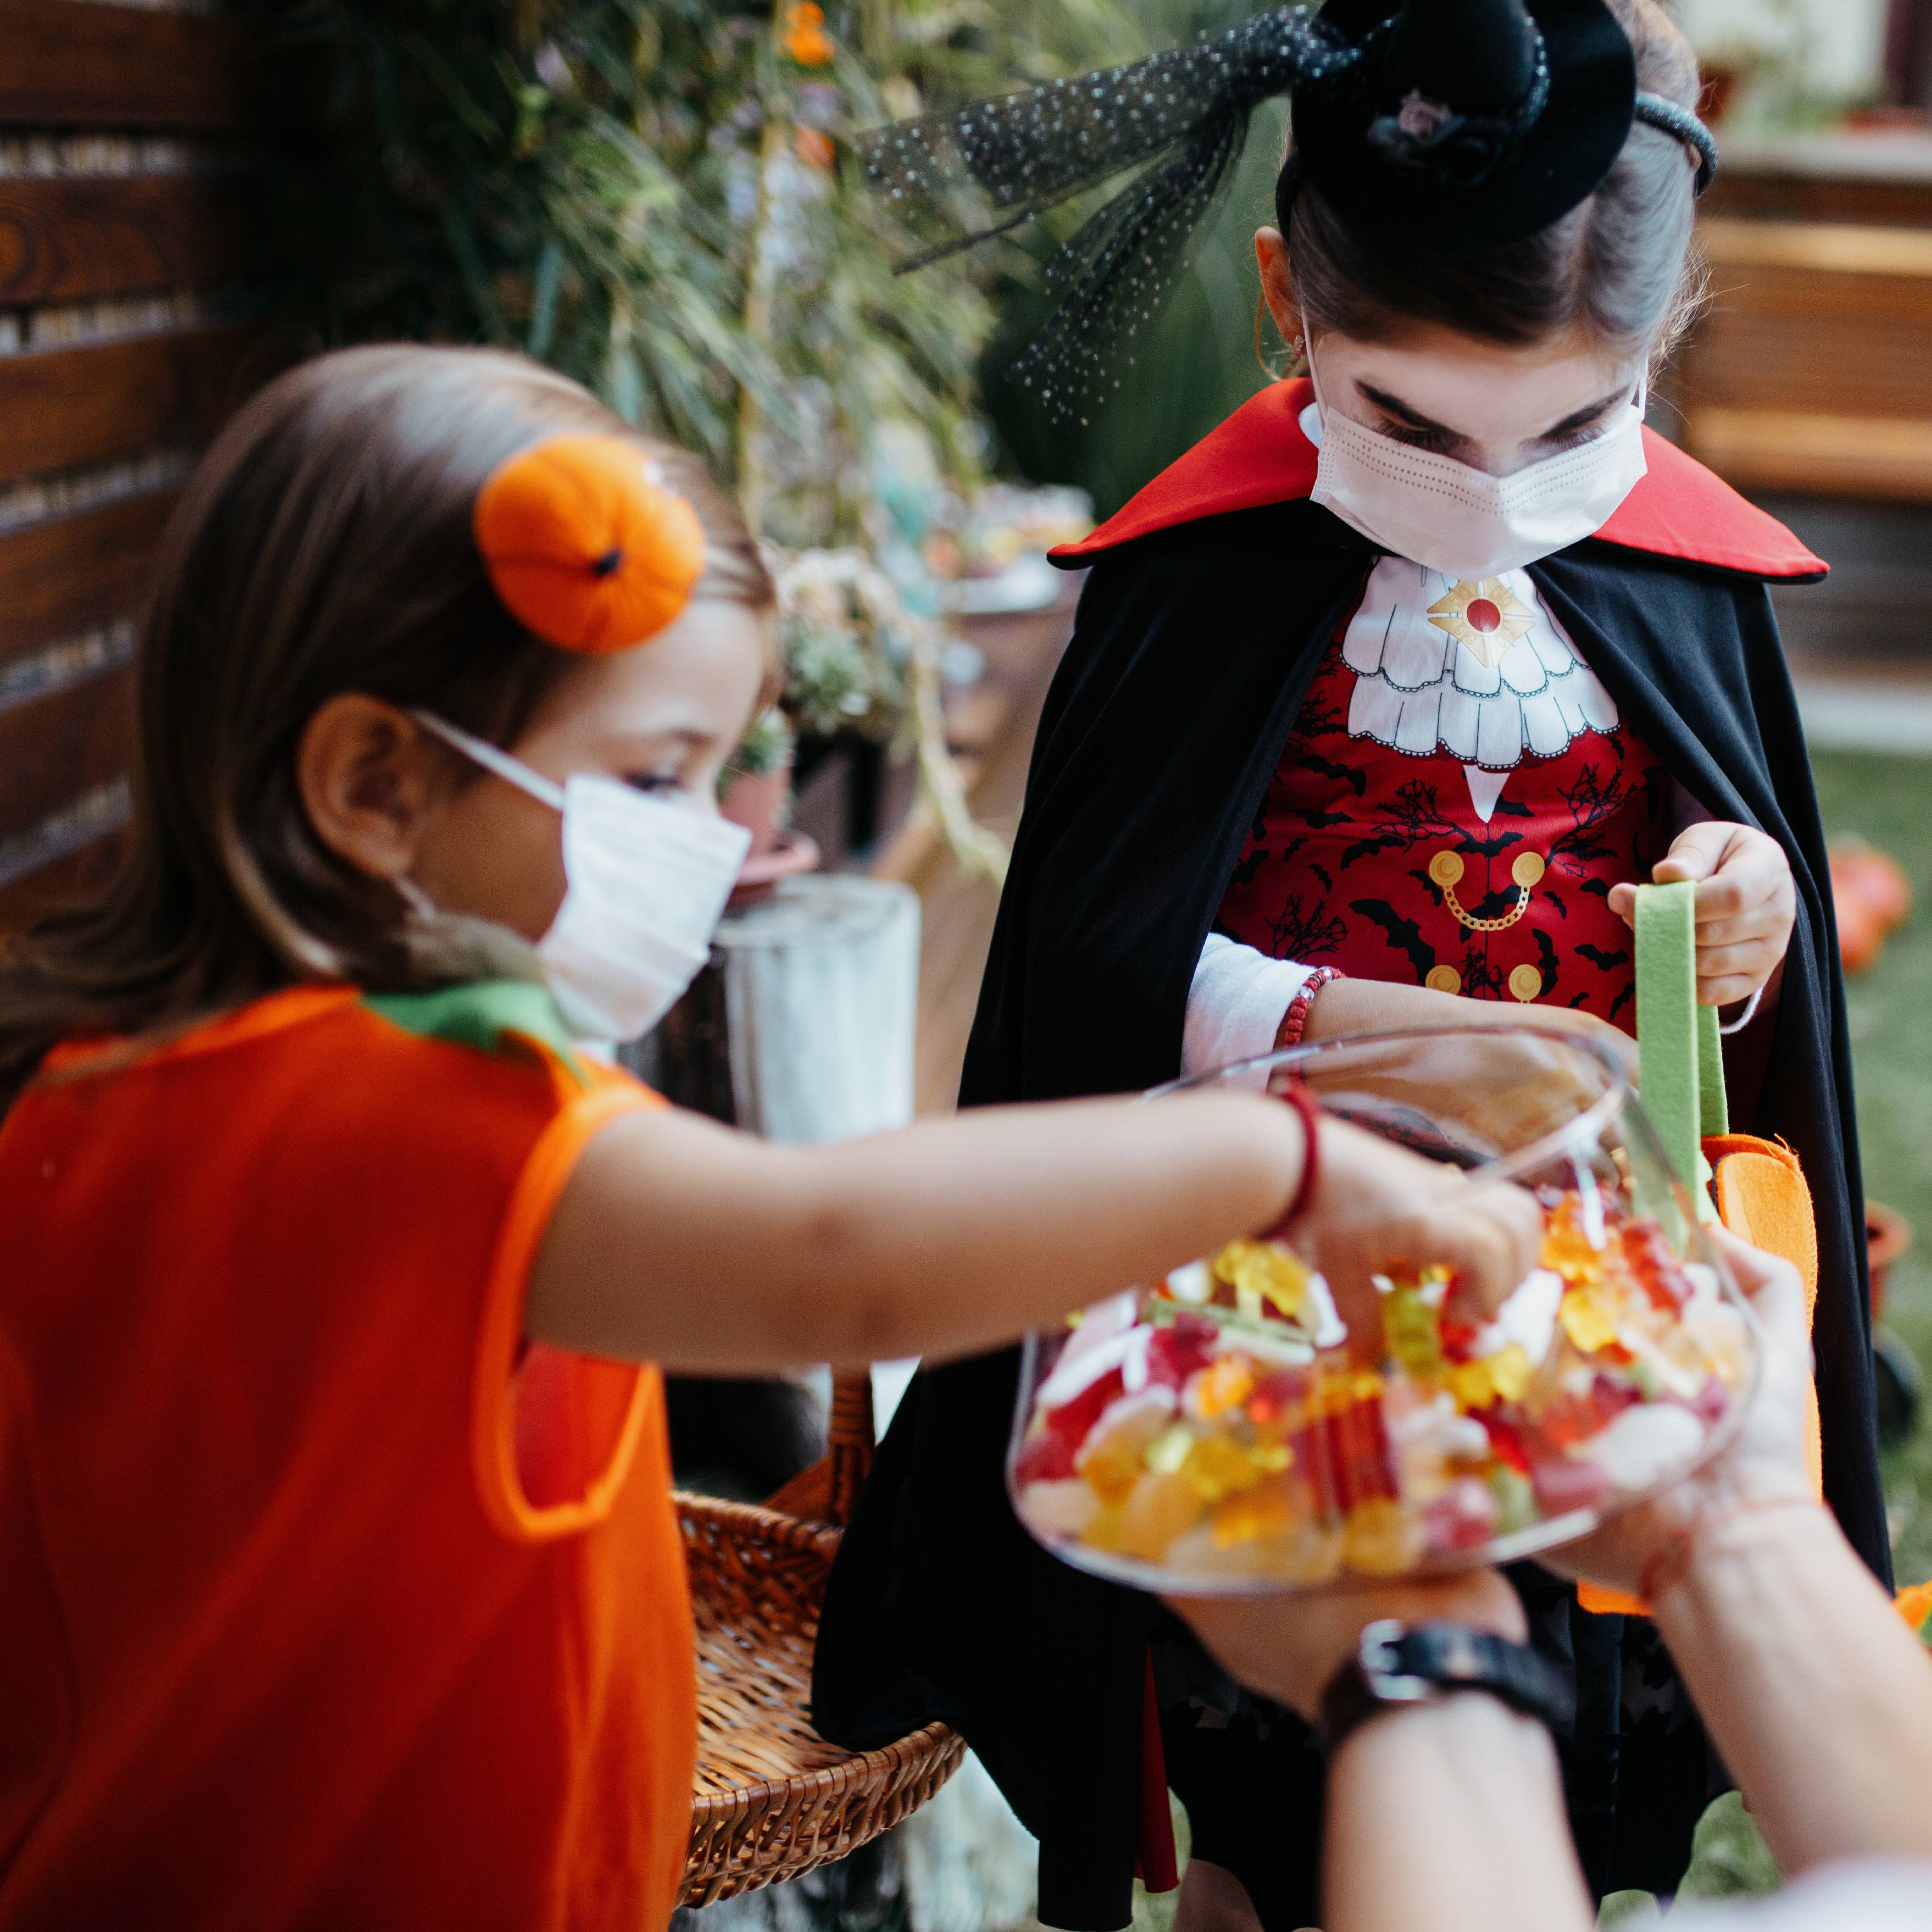 a group of young children in Halloween costumes, trick or treating, wearing face masks, COVID-19